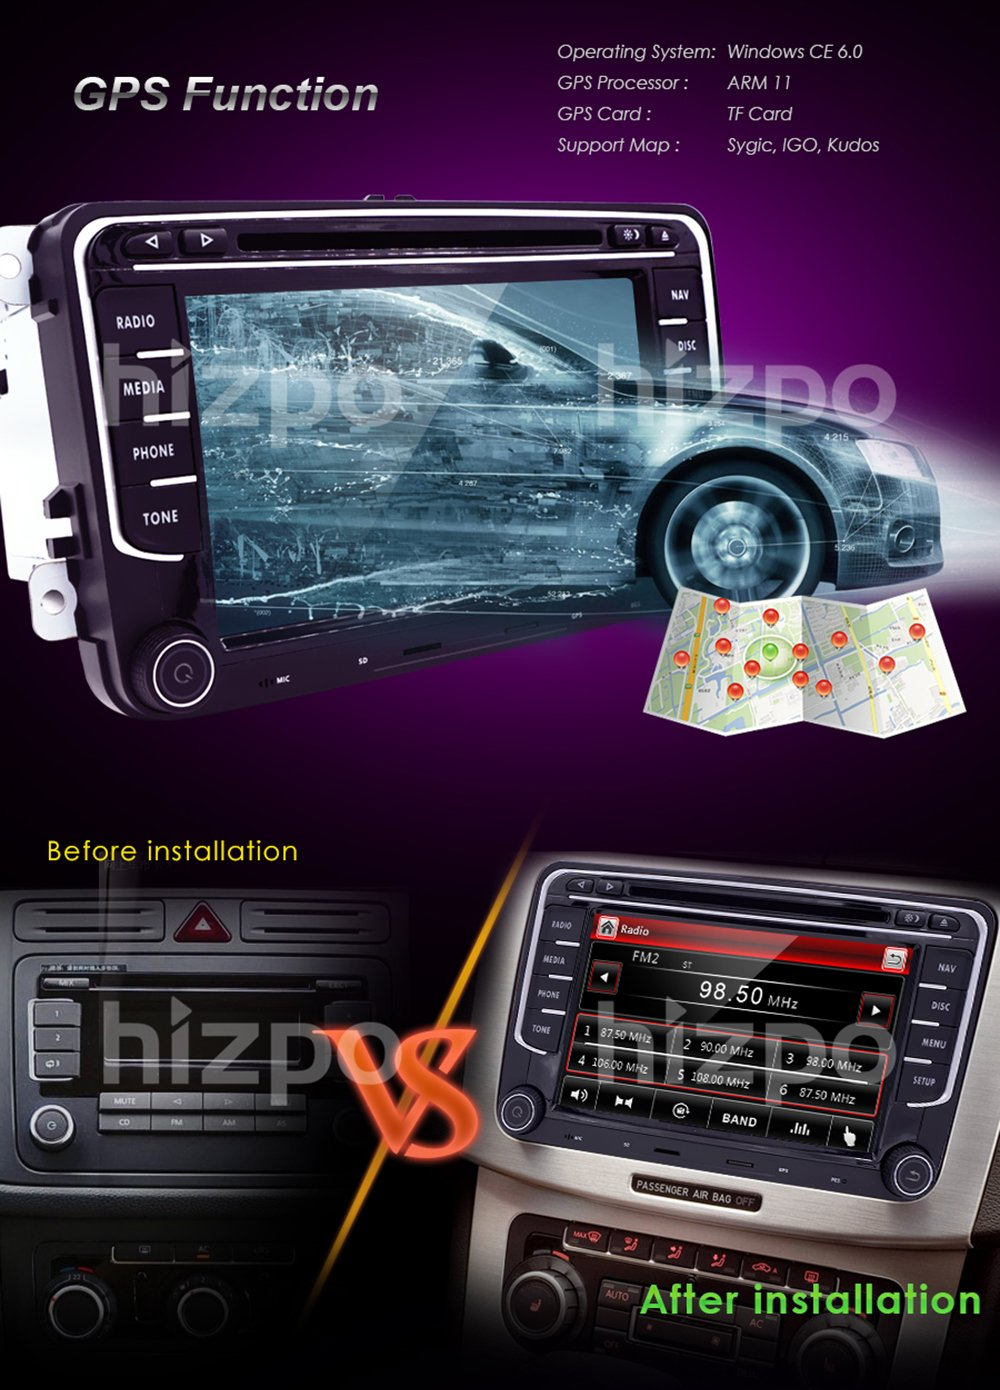 Hd 7 Inch Double Din Car Stereo Gps Dvd Navi For Vw Golf Amazoncom Install Dash Kit Ford 500 06 2006 Radio Wiring Polo Passat Tiguan Jetta Eos Us Map Camera Capacitive Screen Navigation